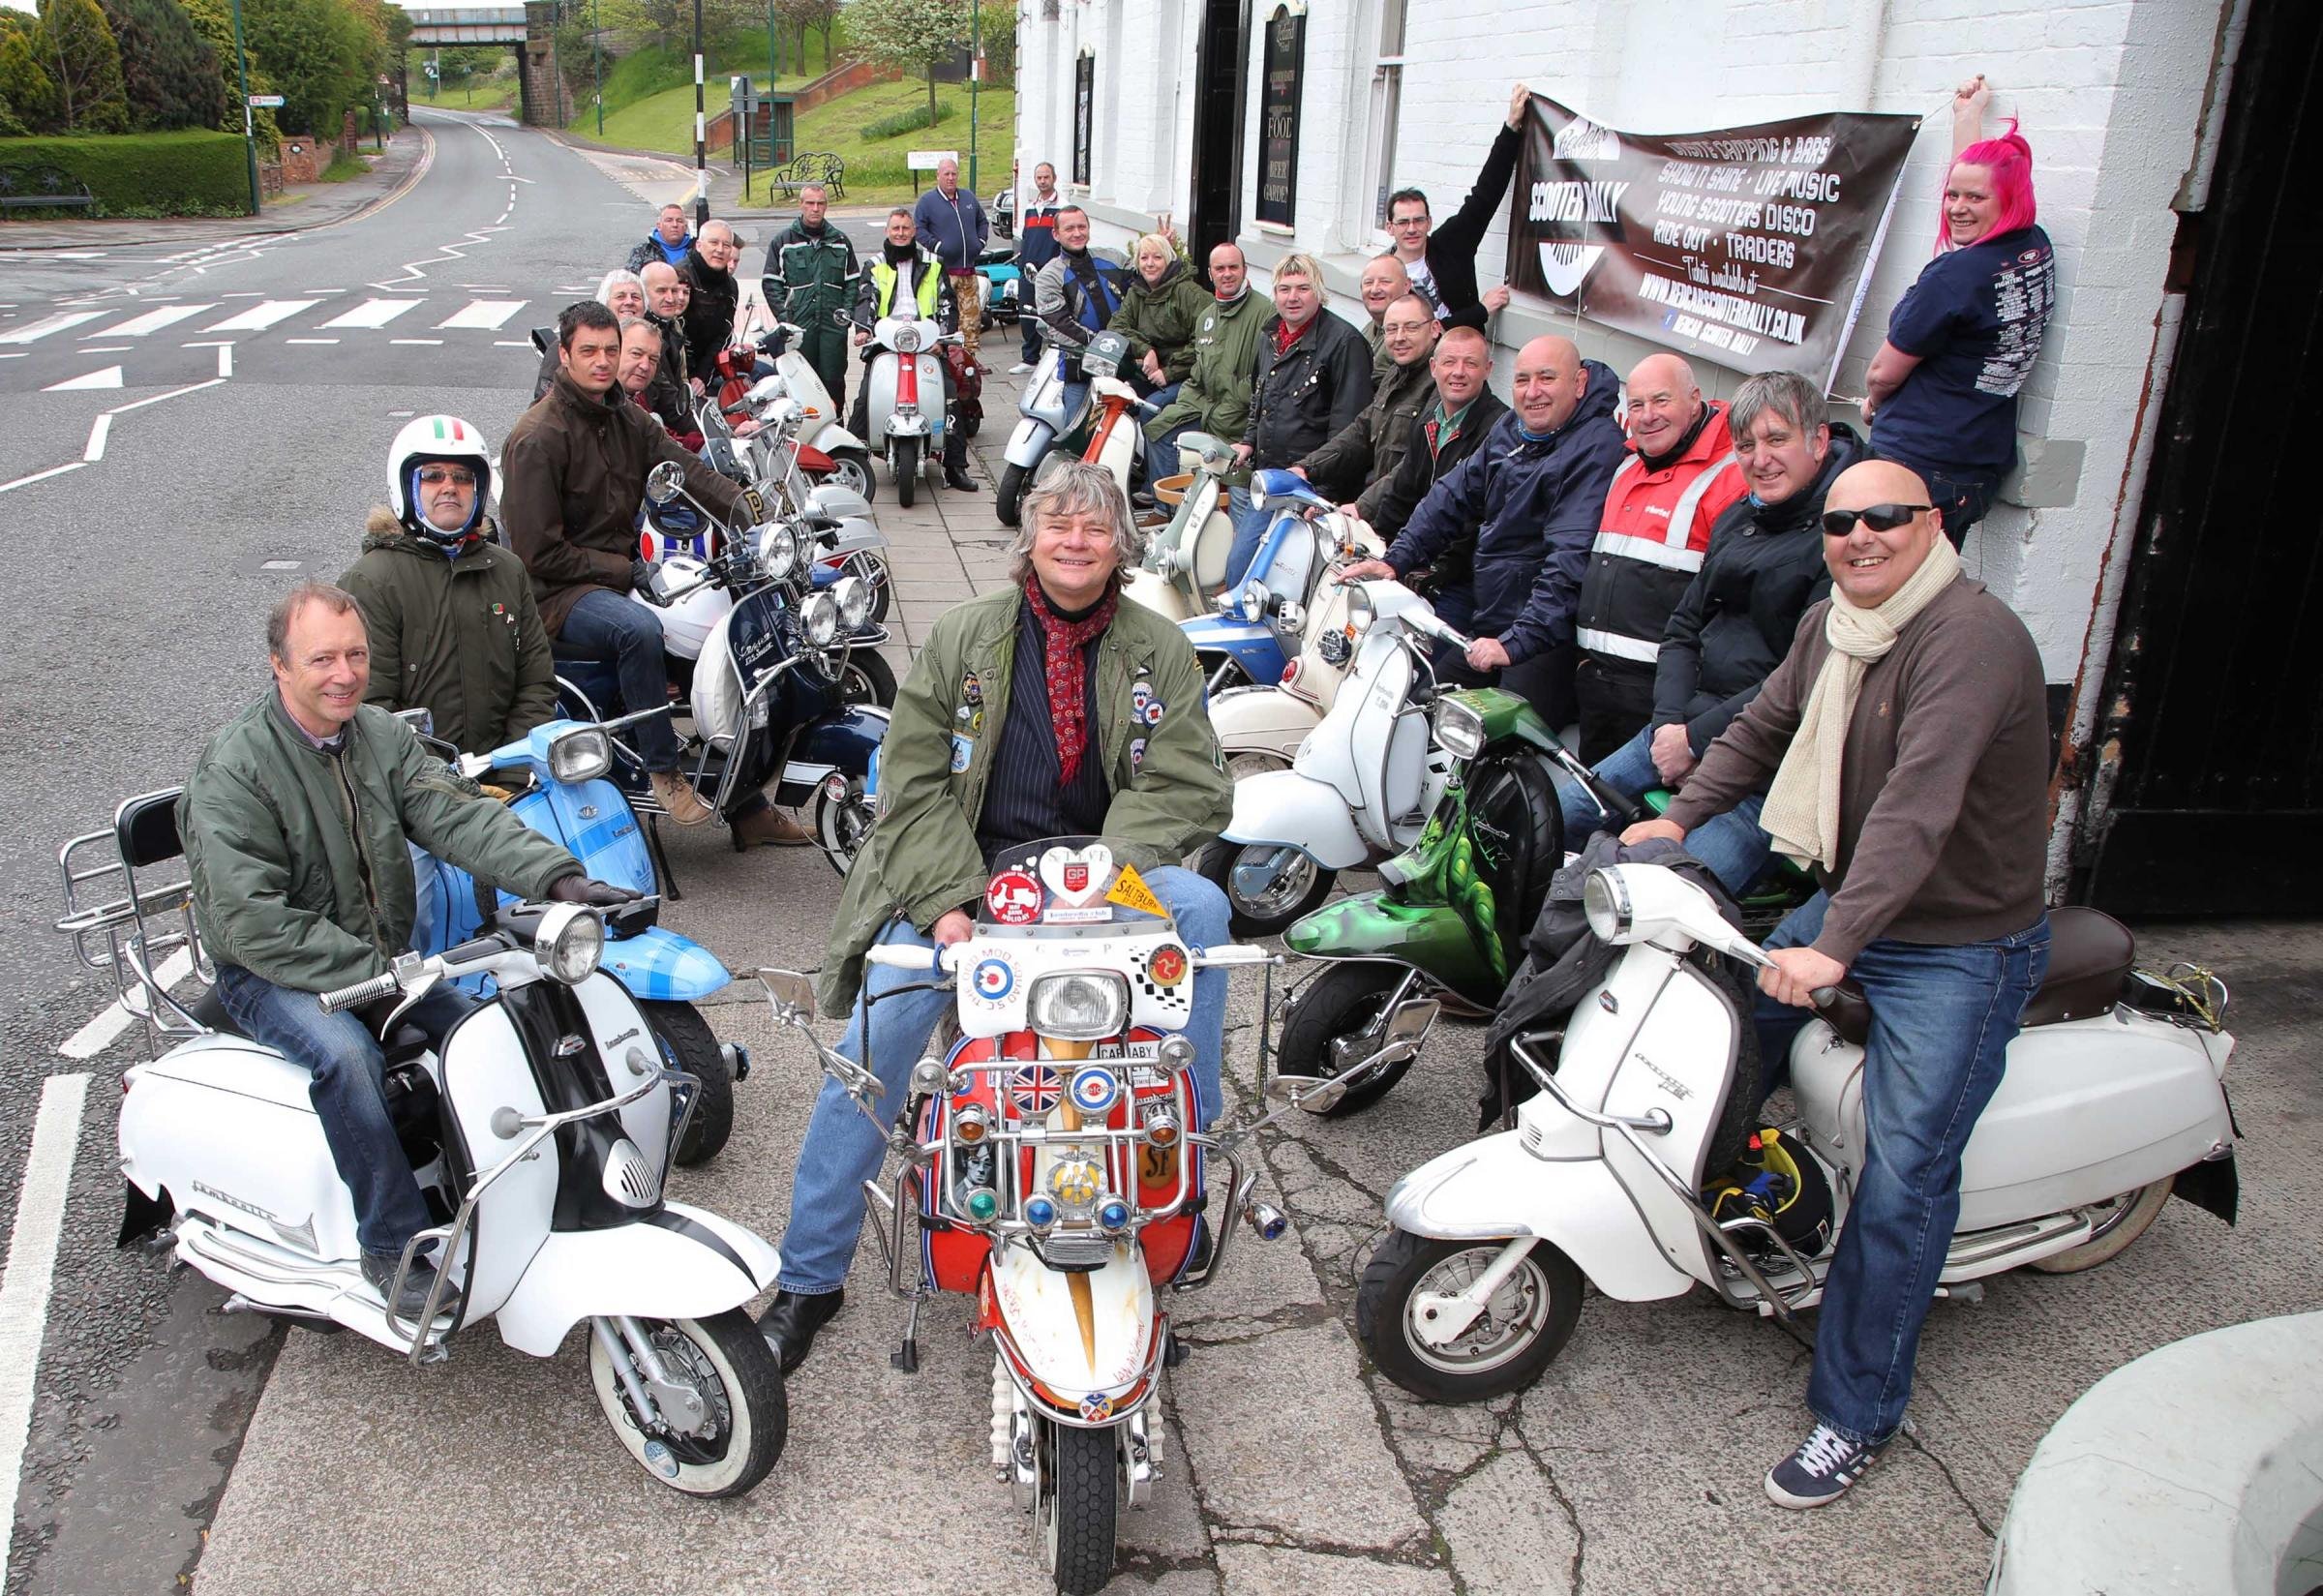 Scooter rally set to recreate the heyday of the Mods